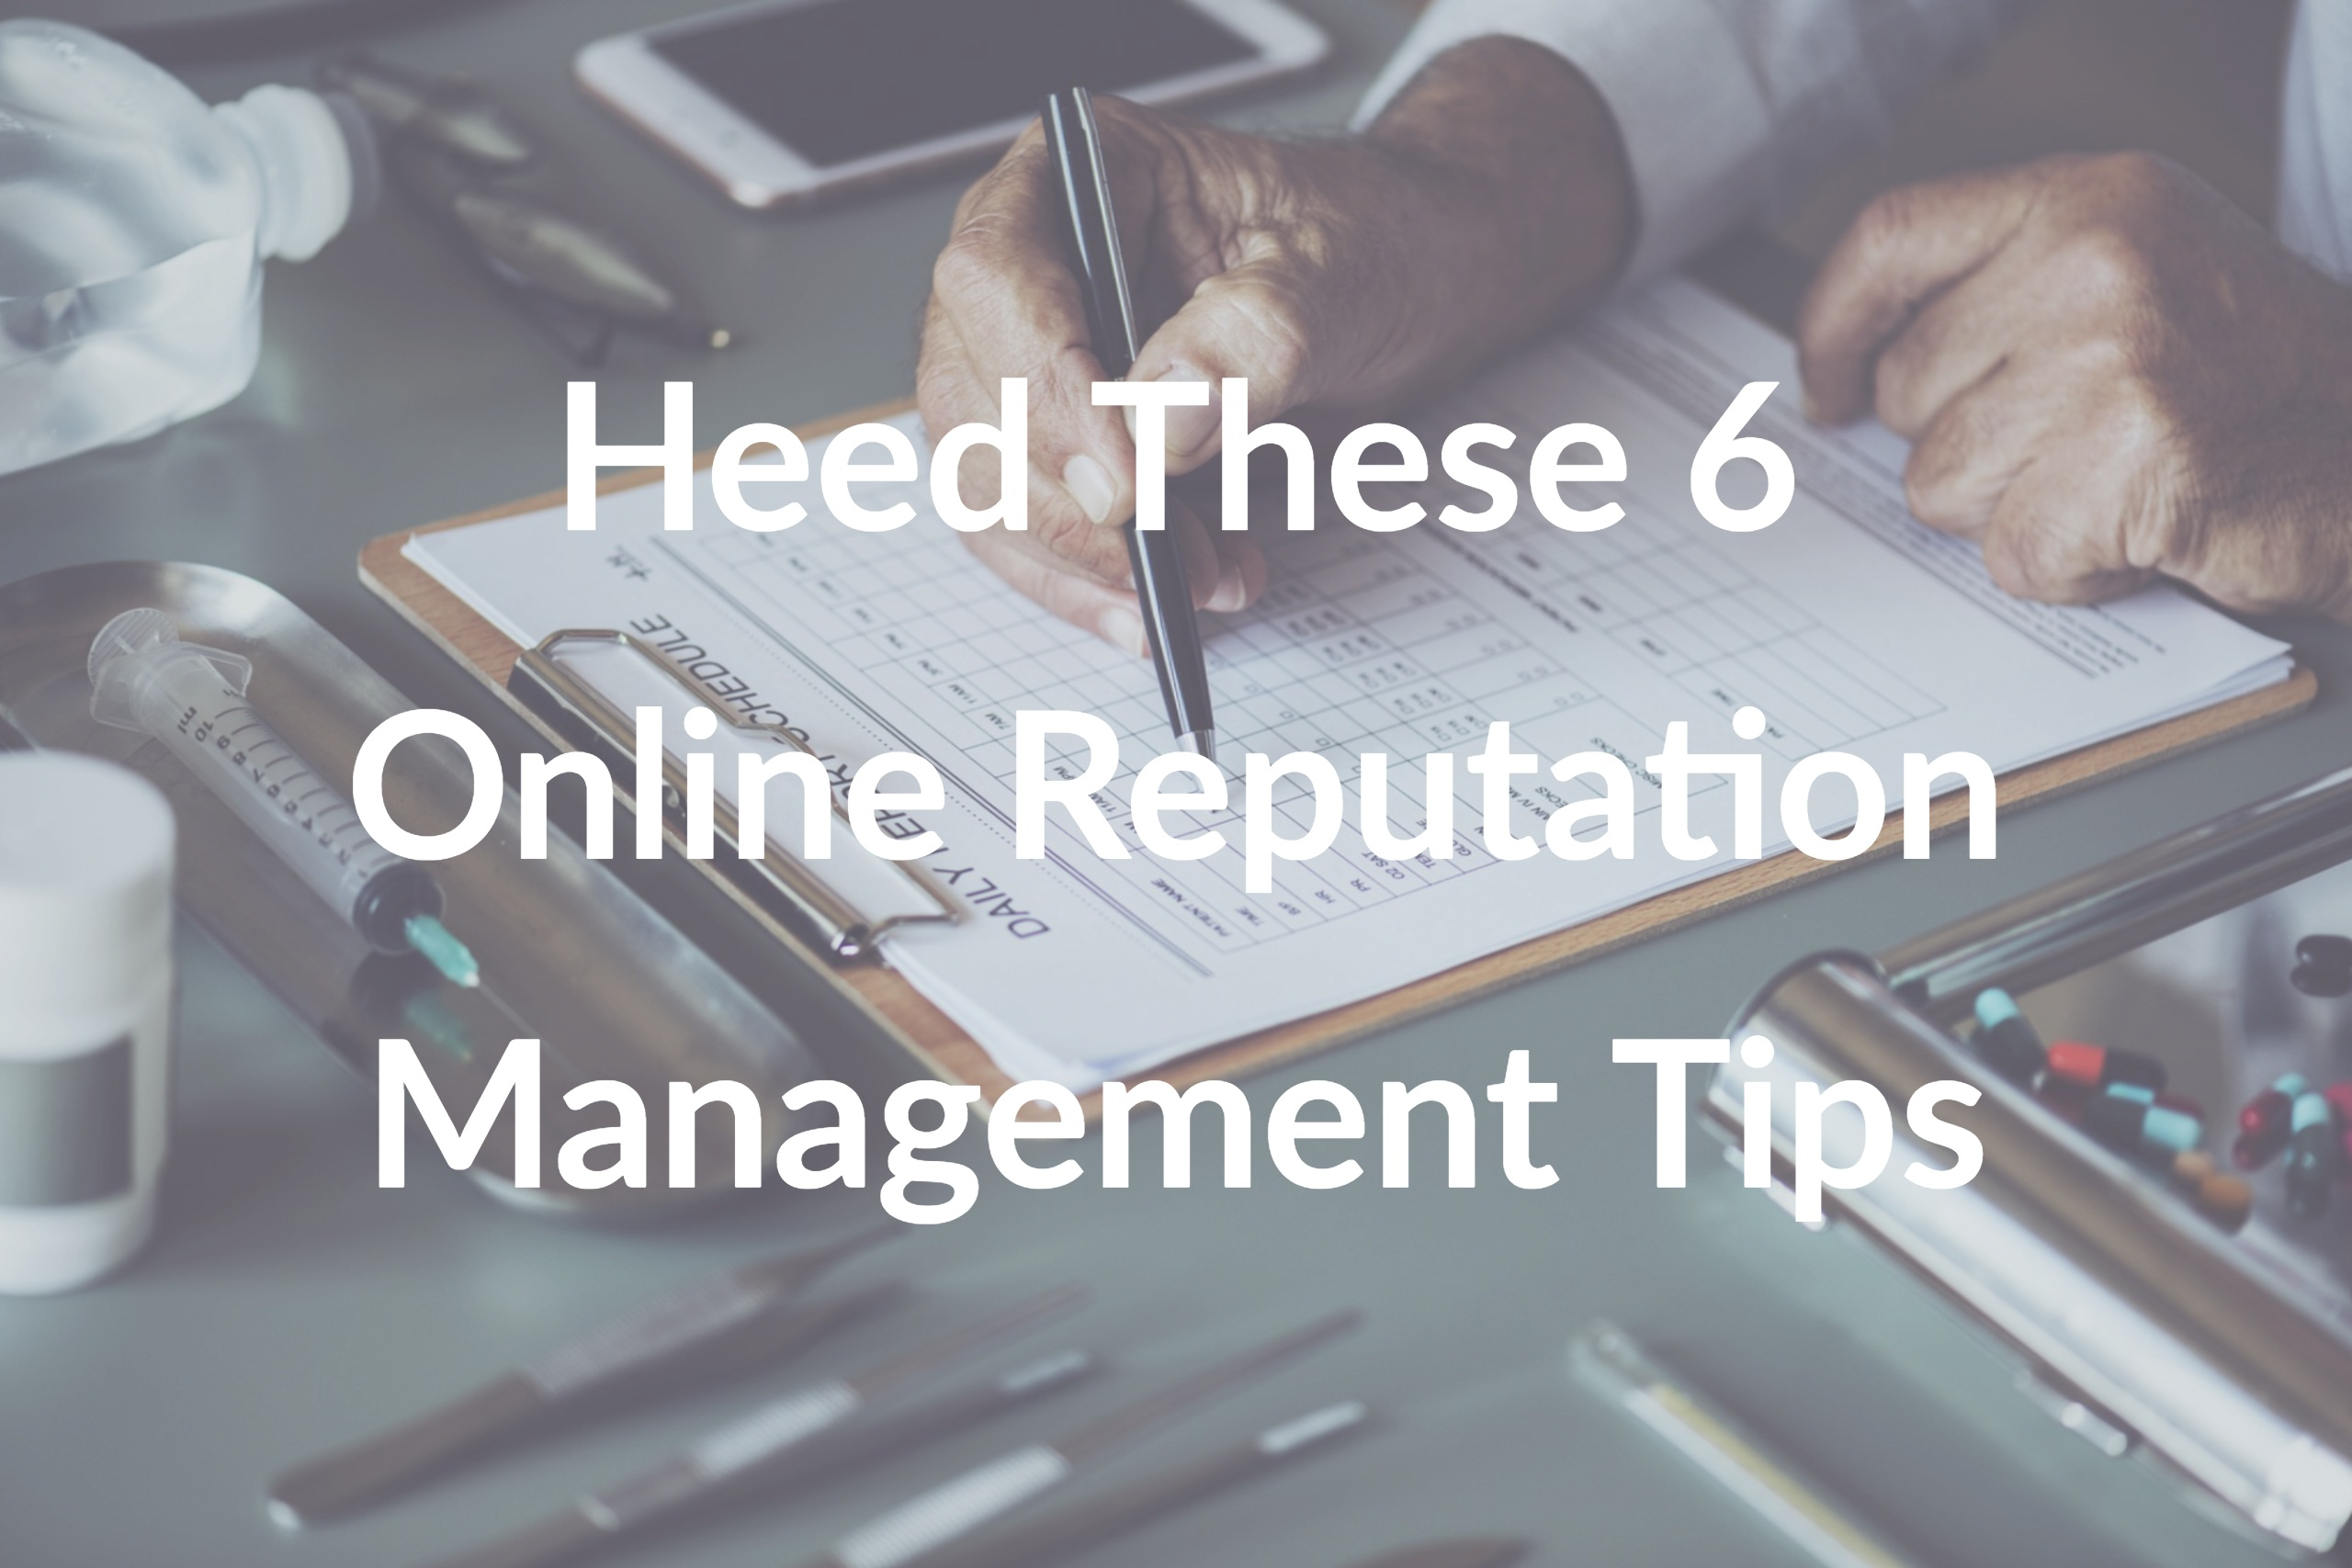 Heed These 6 Online Reputation Management Tips